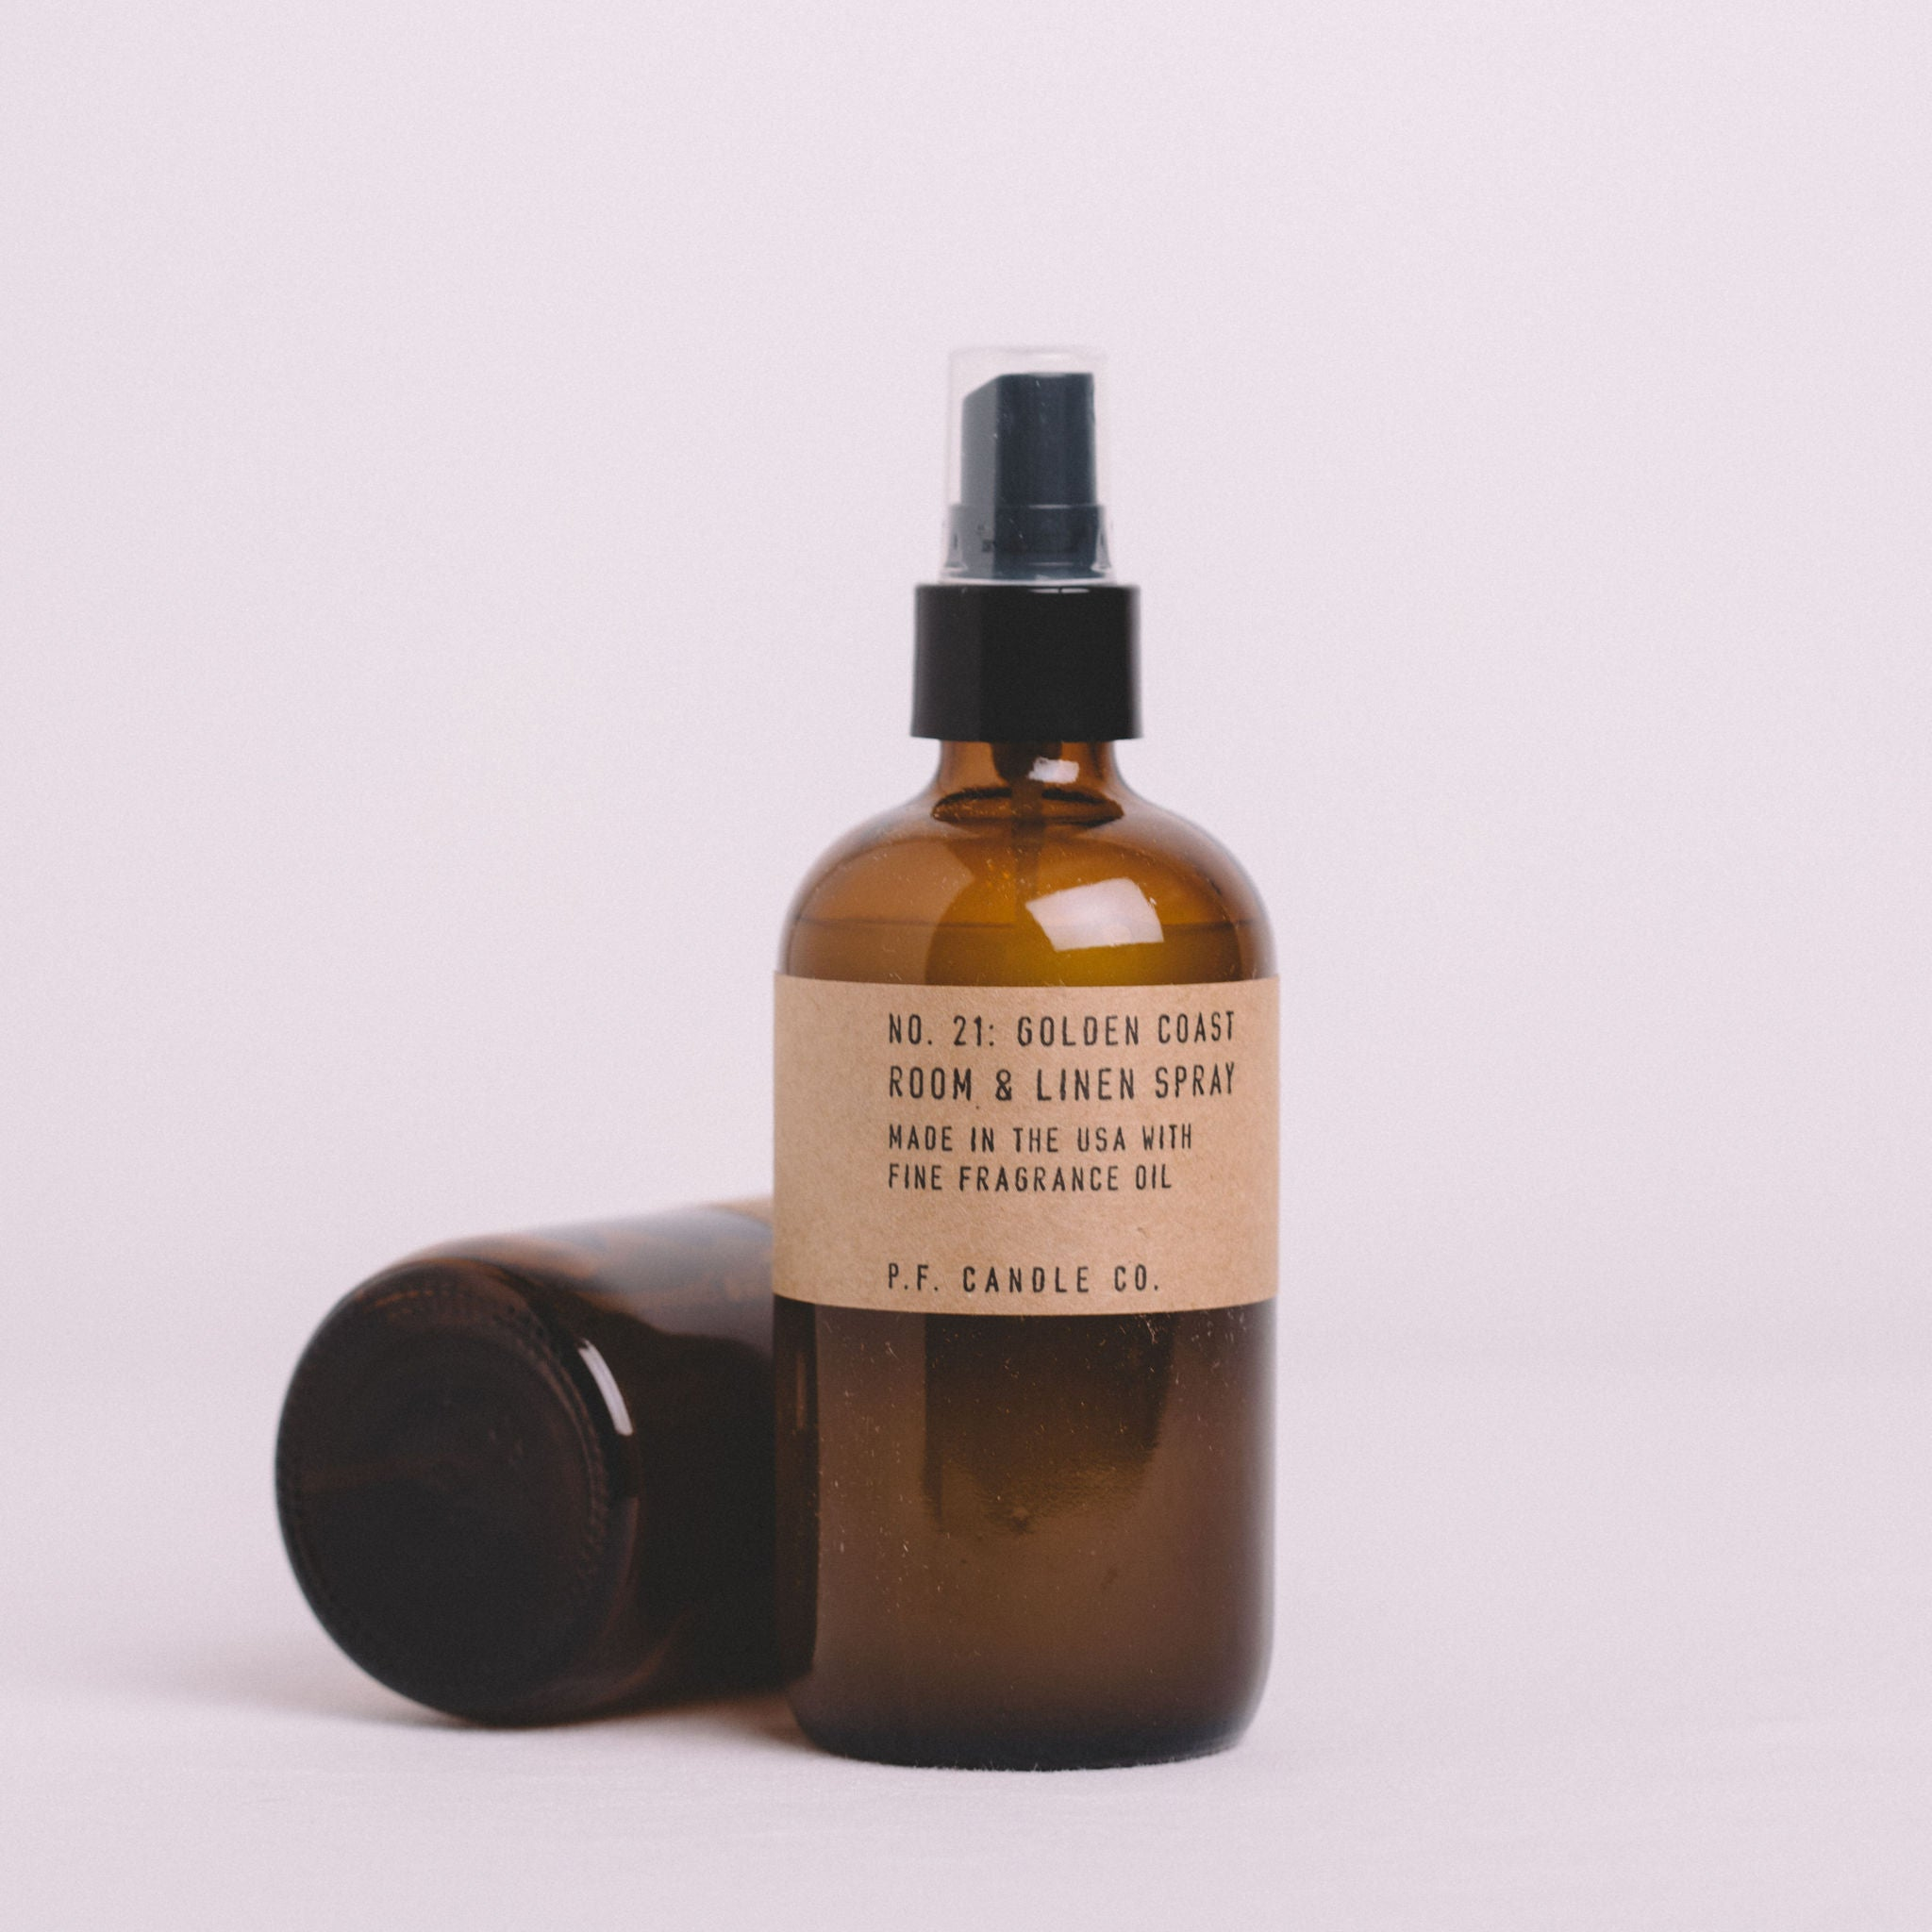 PF CANDLE CO. || ROOM & LINEN SPRAY